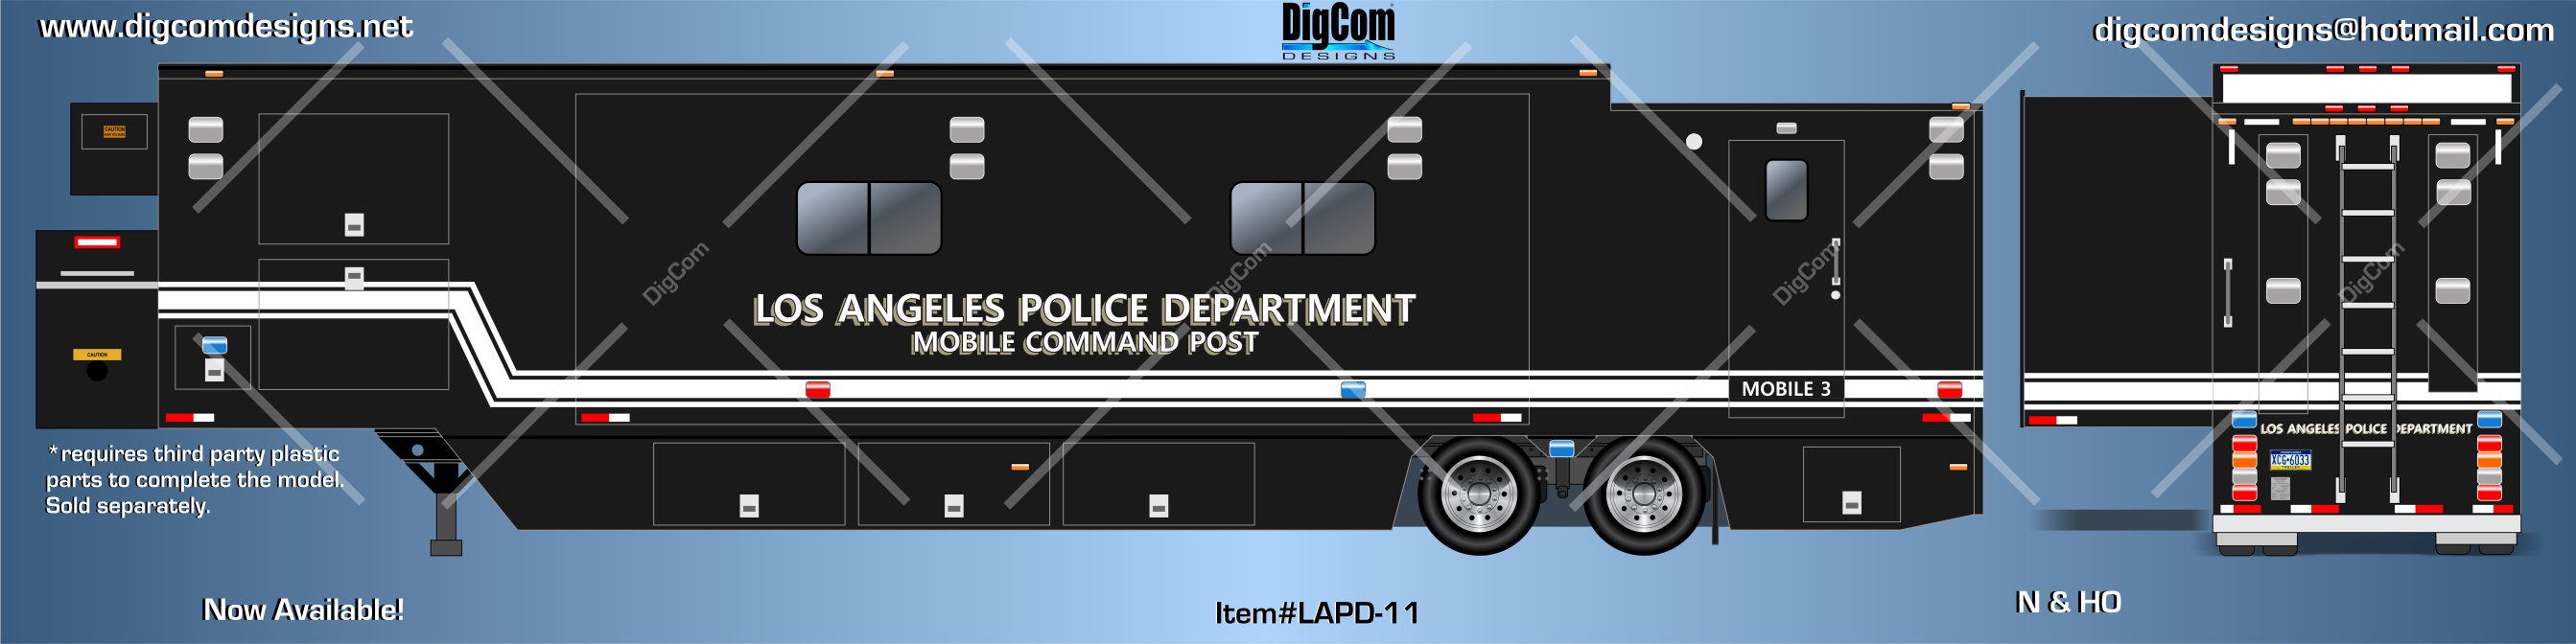 LAPD COMMAND TRAILER DESIGN.png